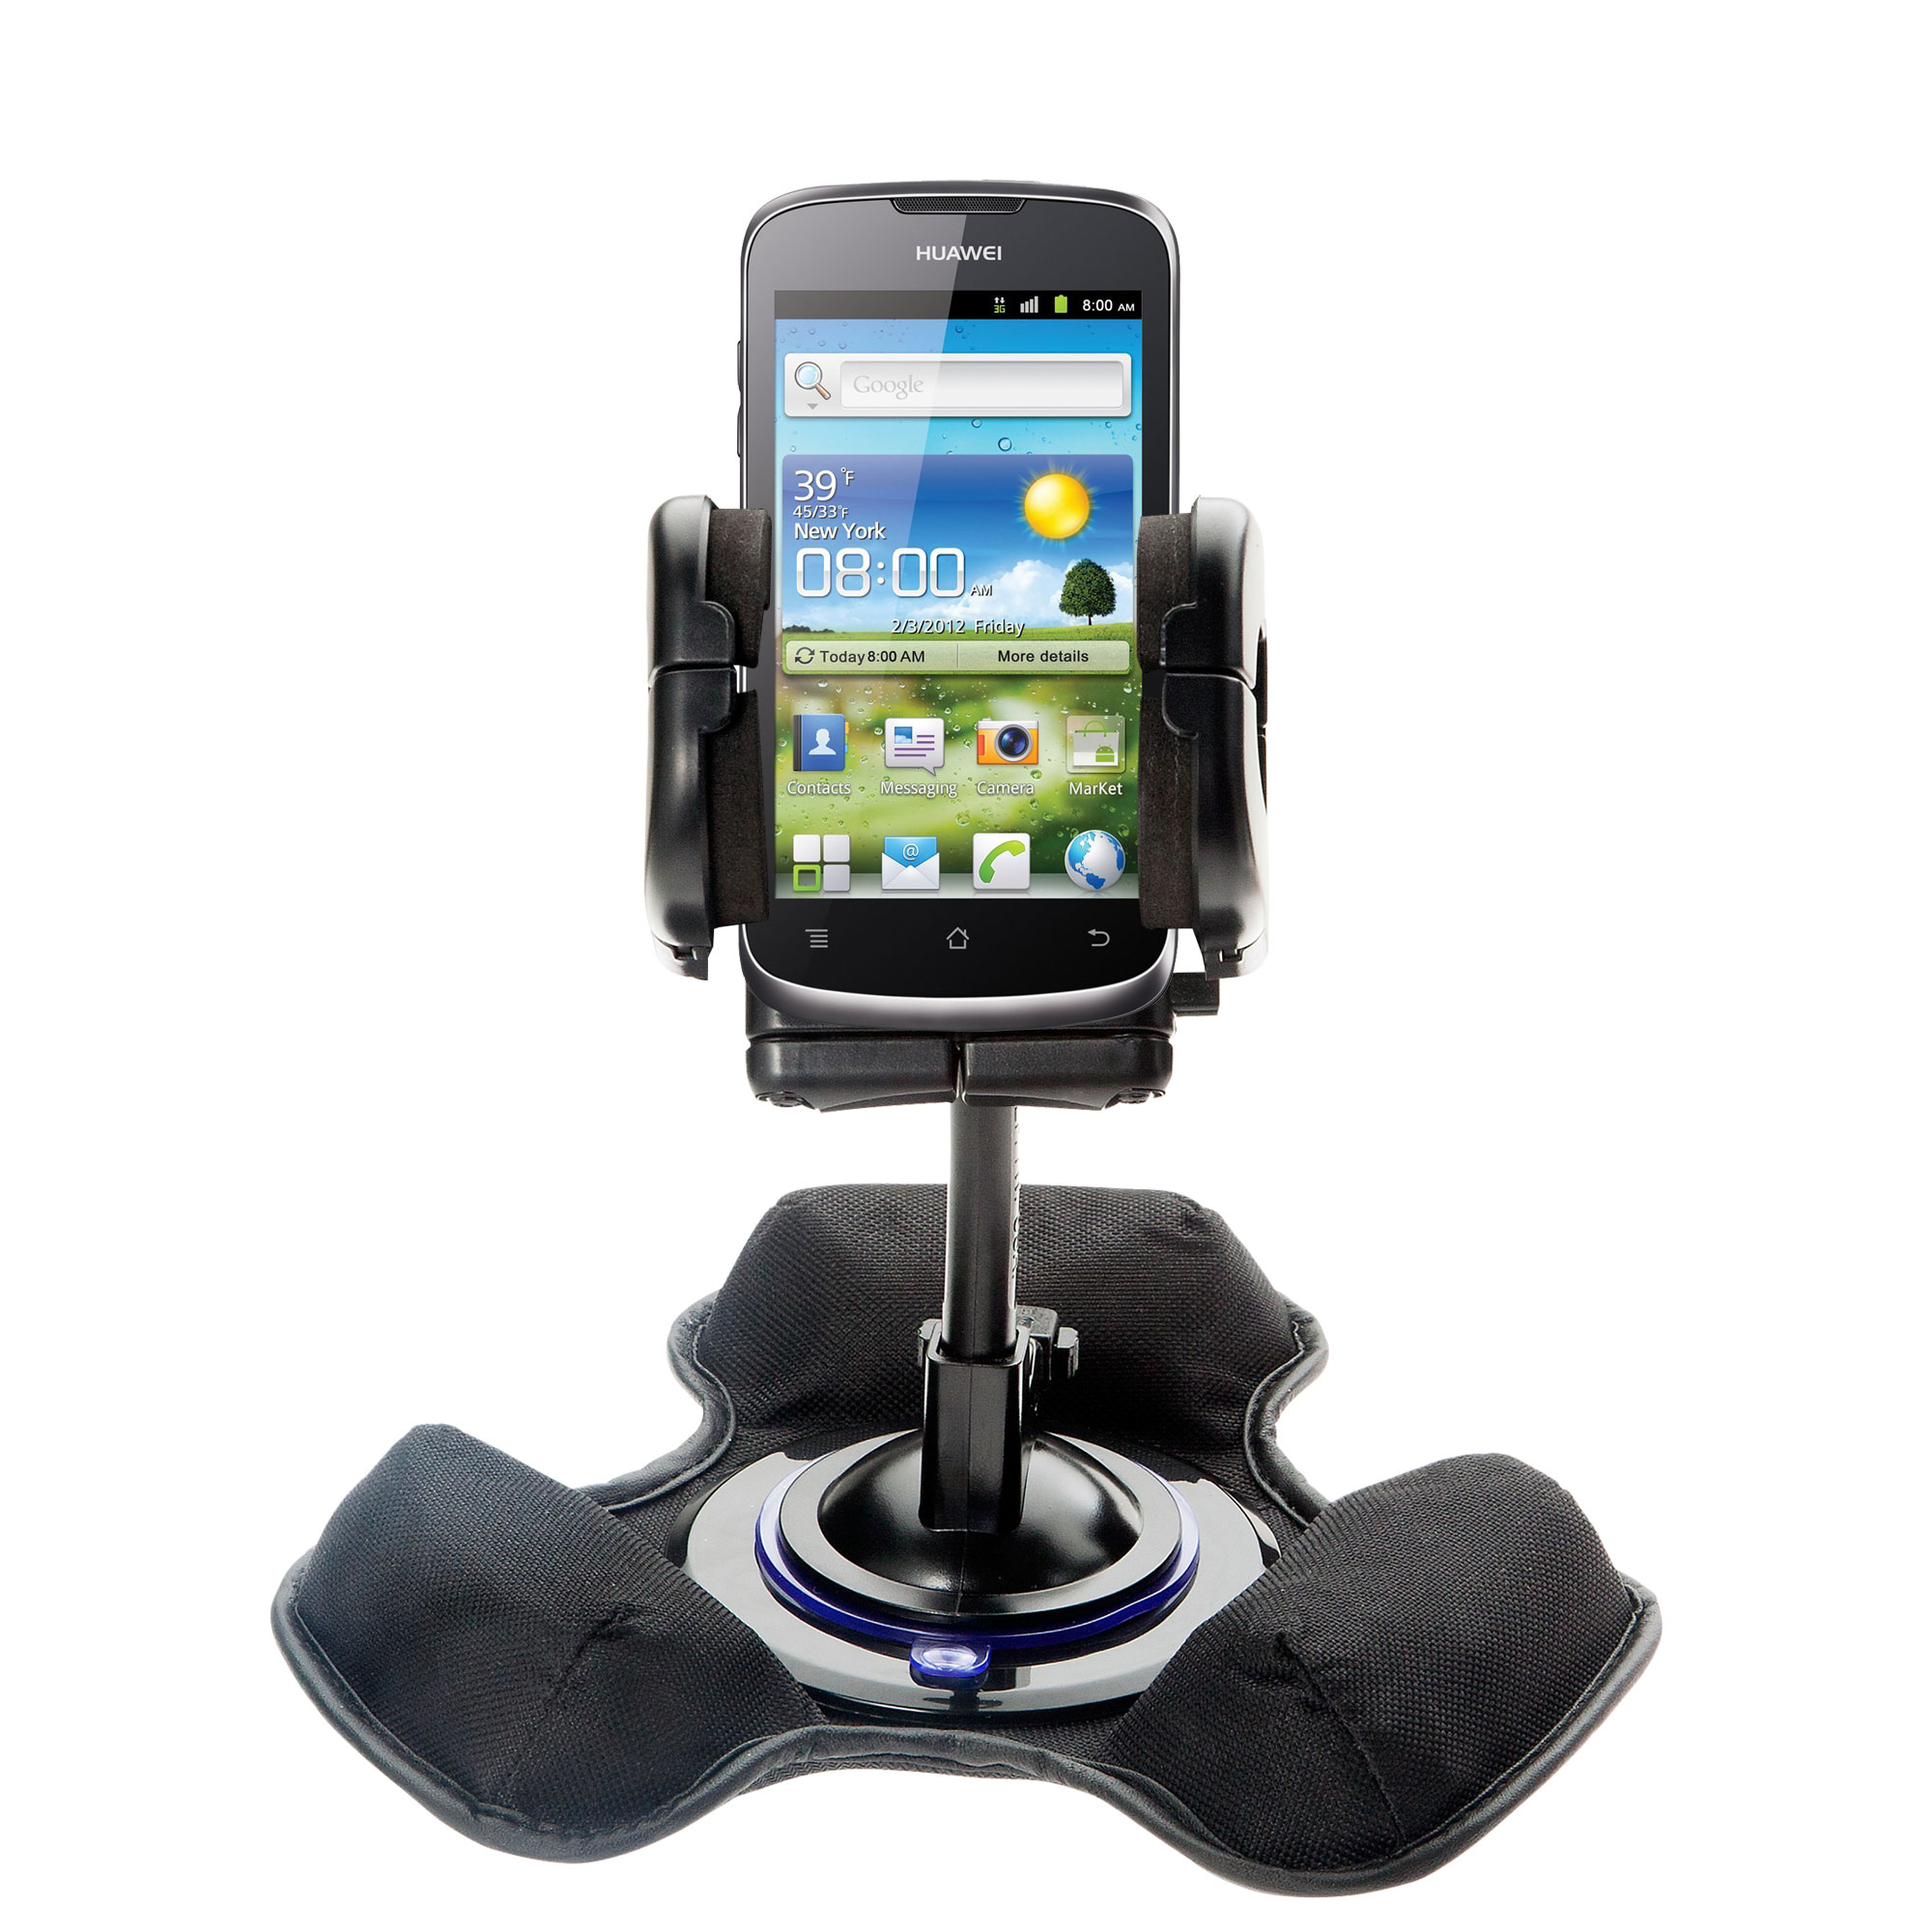 Dash and Windshield Holder compatible with the Huawei U8815